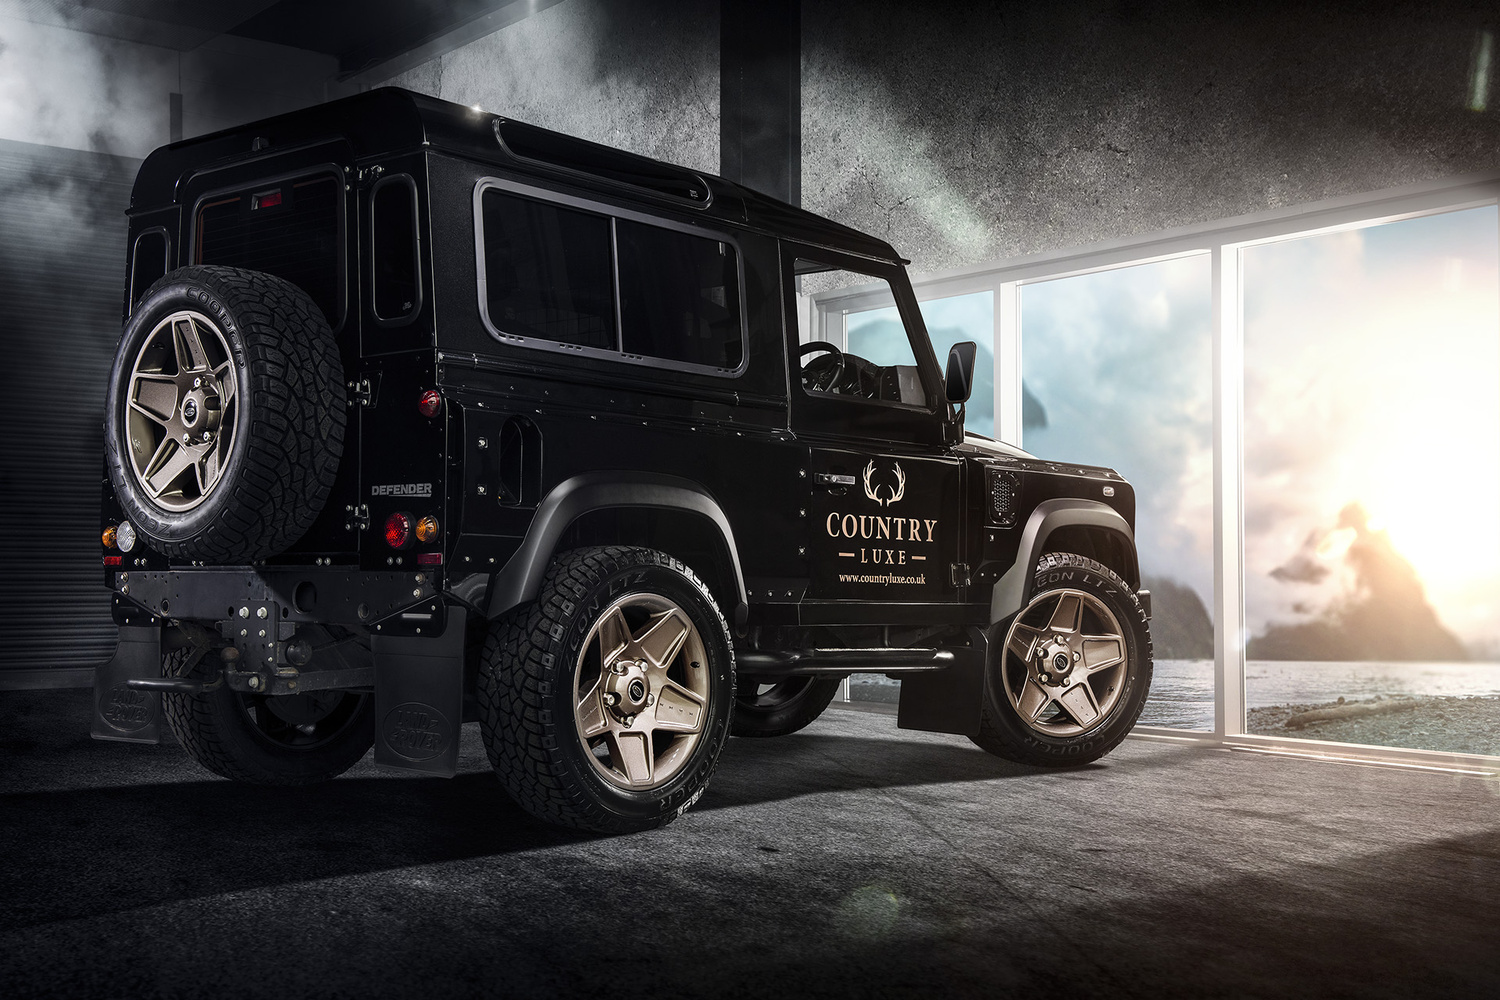 Country Luxe Defender by Graham Taylor